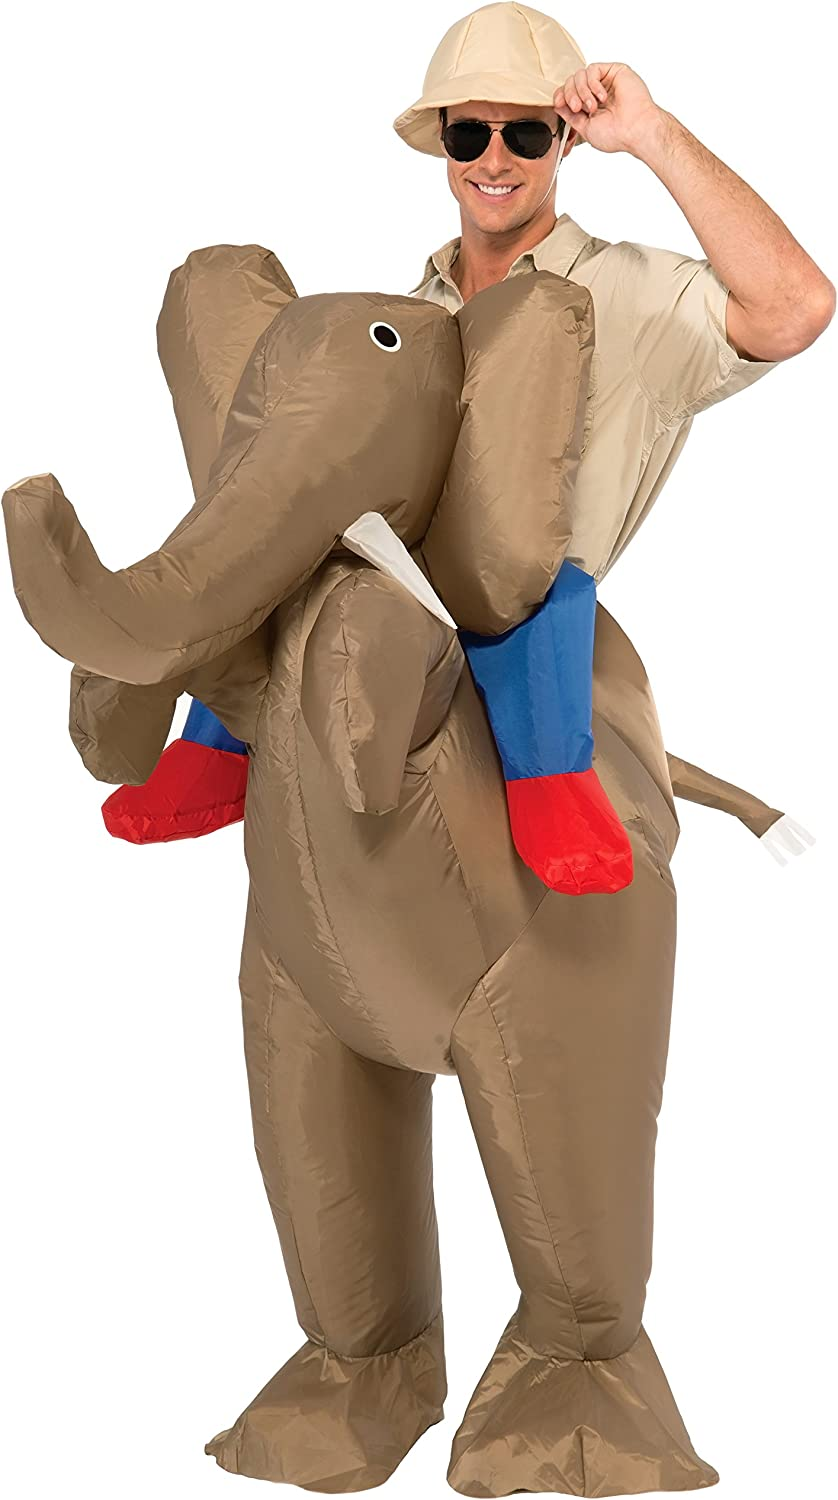 Adult Inflatable Ride An Elephant Costume